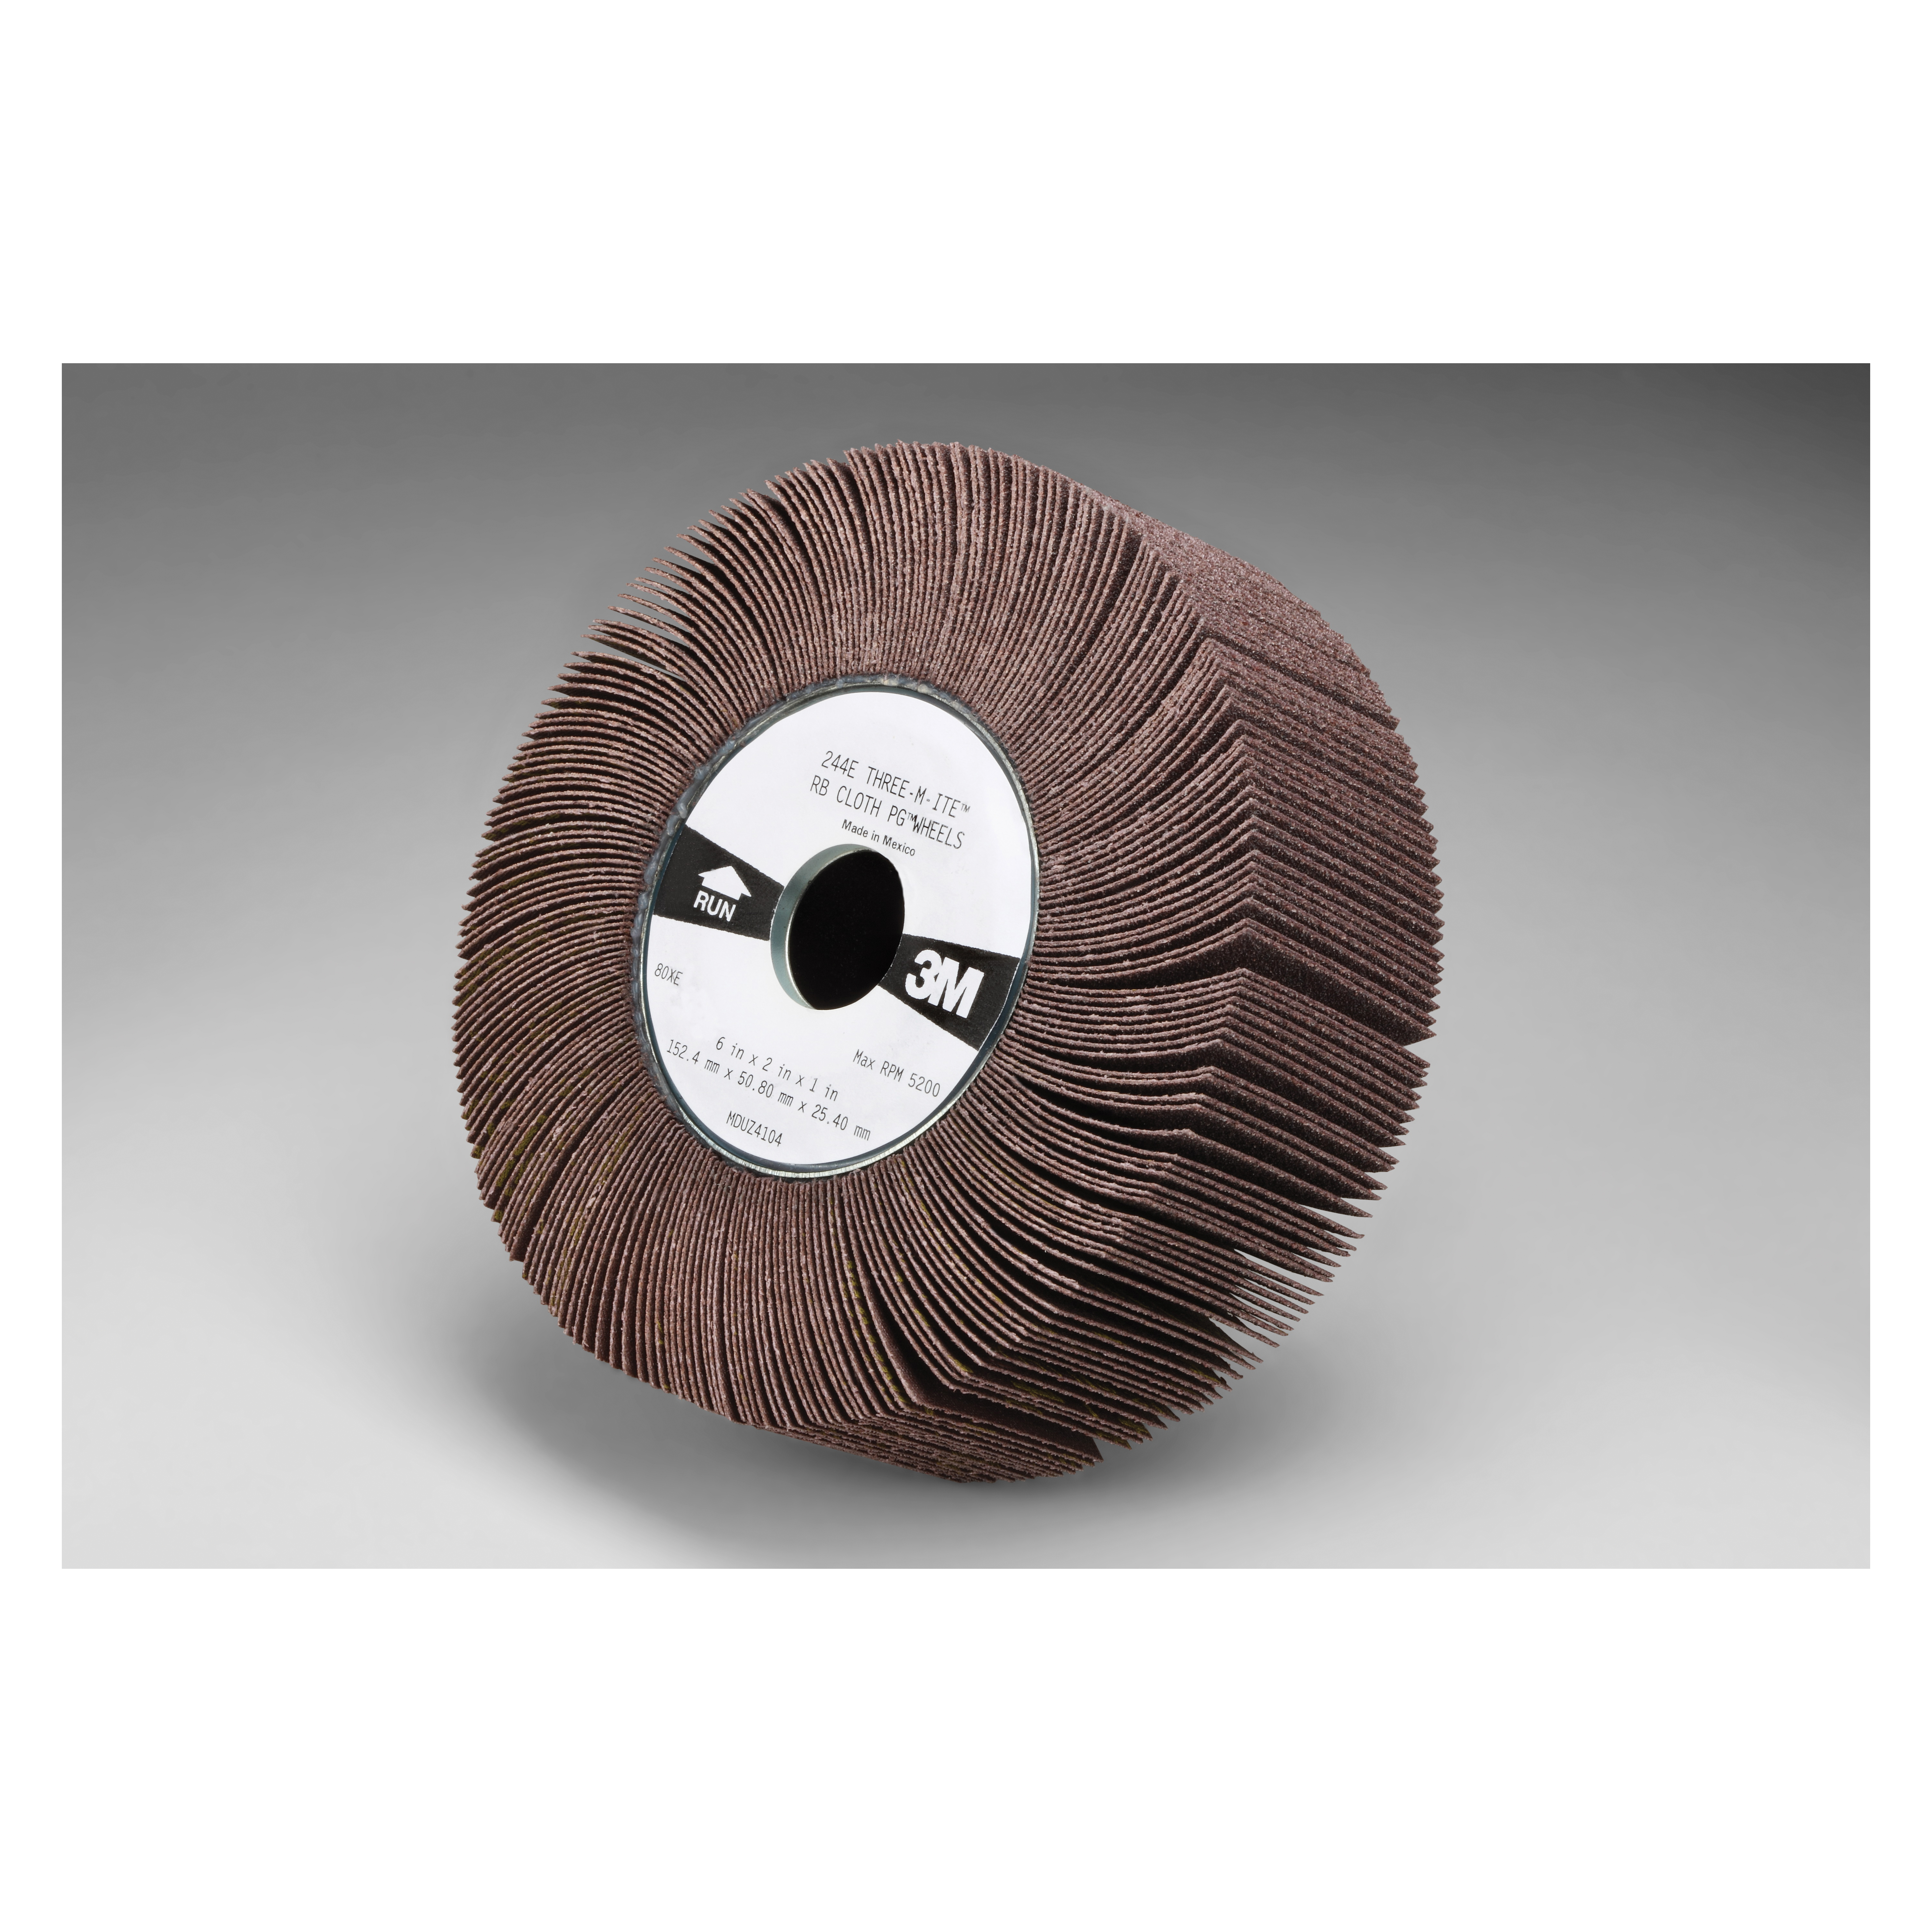 3M™ 051144-35088 Unmounted Coated Flap Wheel, 6 in Dia, 2 in W Face, 60 Grit, Medium Grade, Aluminum Oxide Abrasive